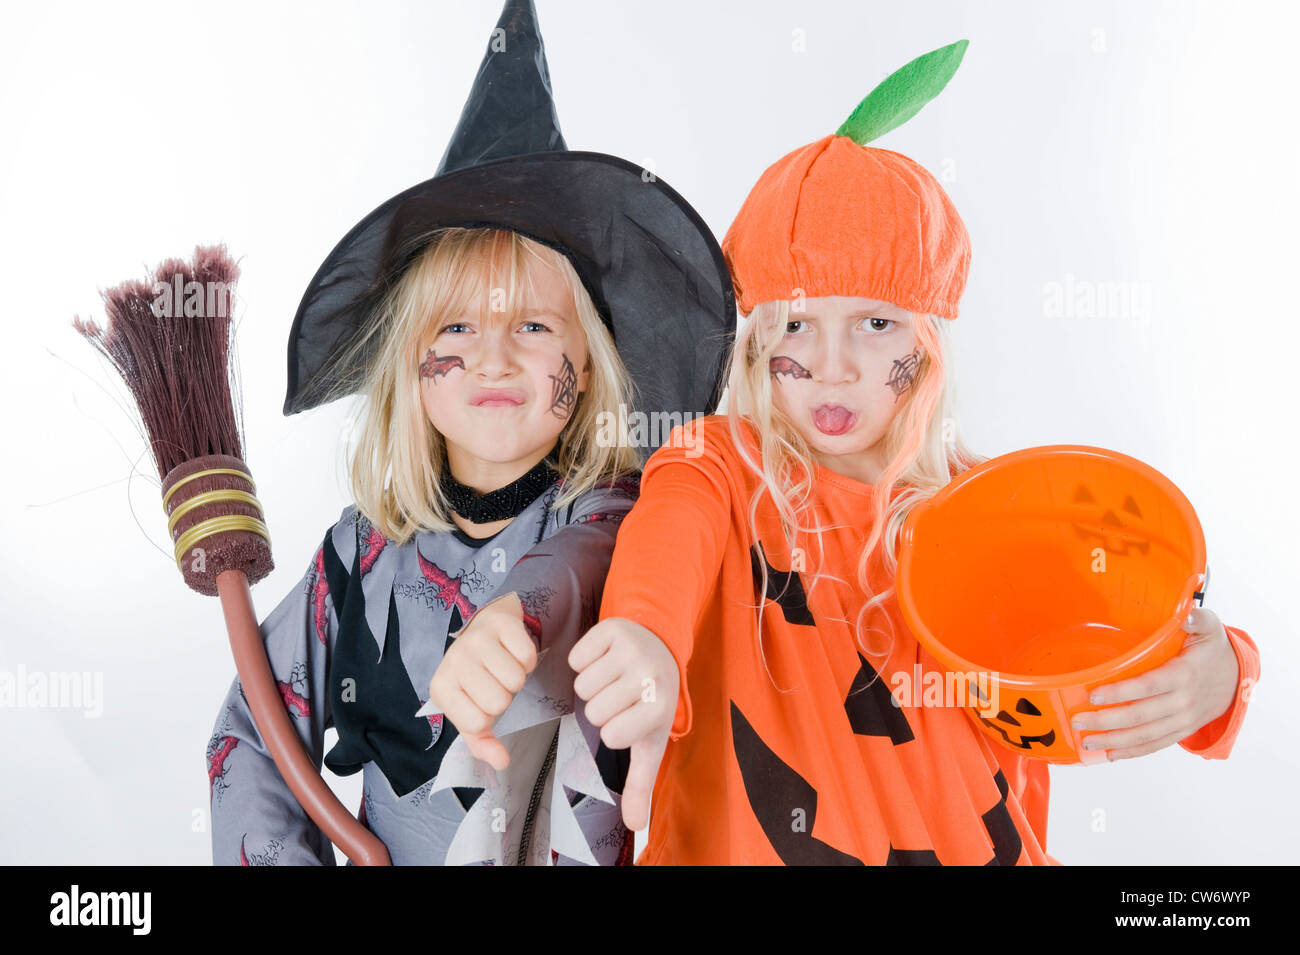 children in halloween costumes dress up as witch and pumpkin - Stock Image  sc 1 st  Alamy & Mythical Creature Costumes Stock Photos u0026 Mythical Creature Costumes ...